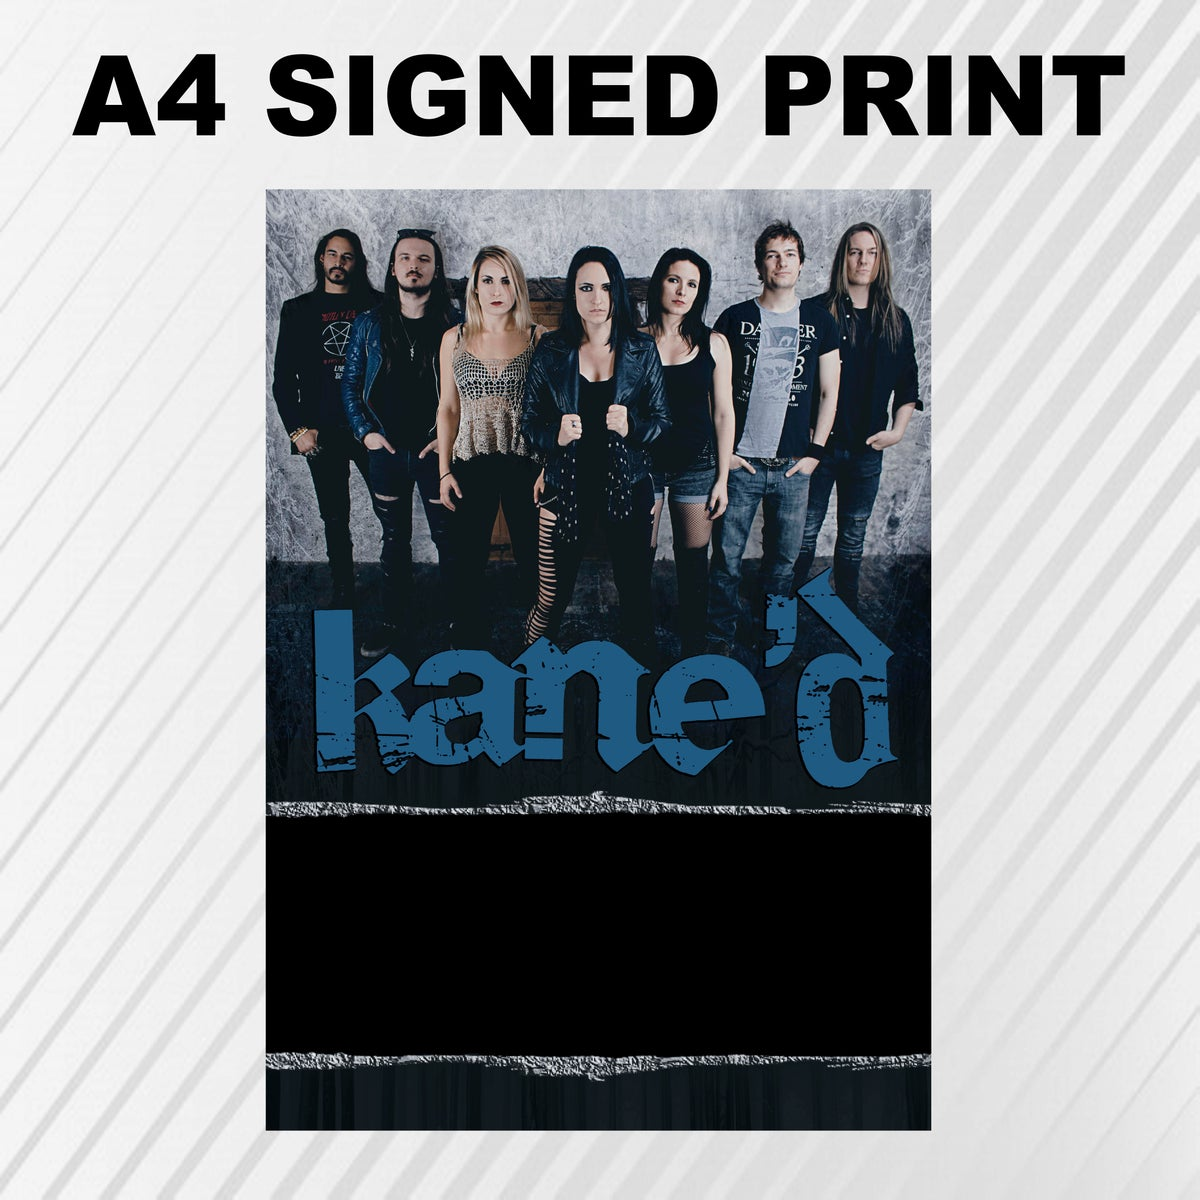 Image of A4 Signed Print